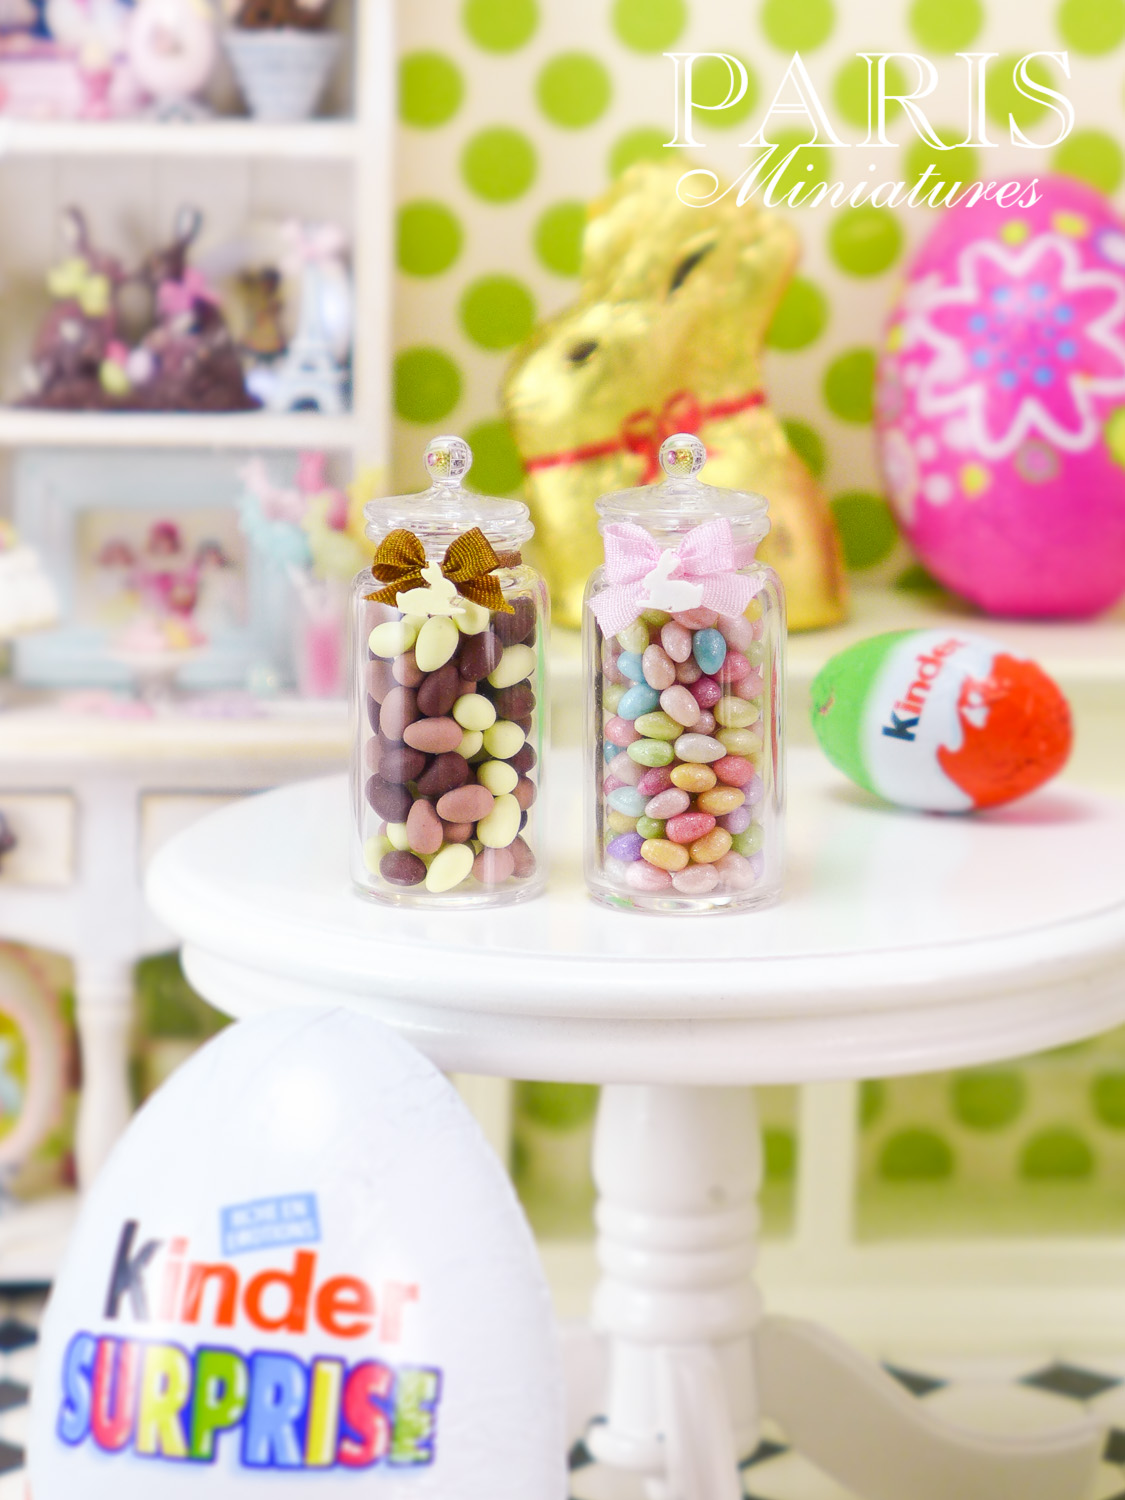 Kinder eggs, Lindt chocolate bunny shown with miniature easter eggs